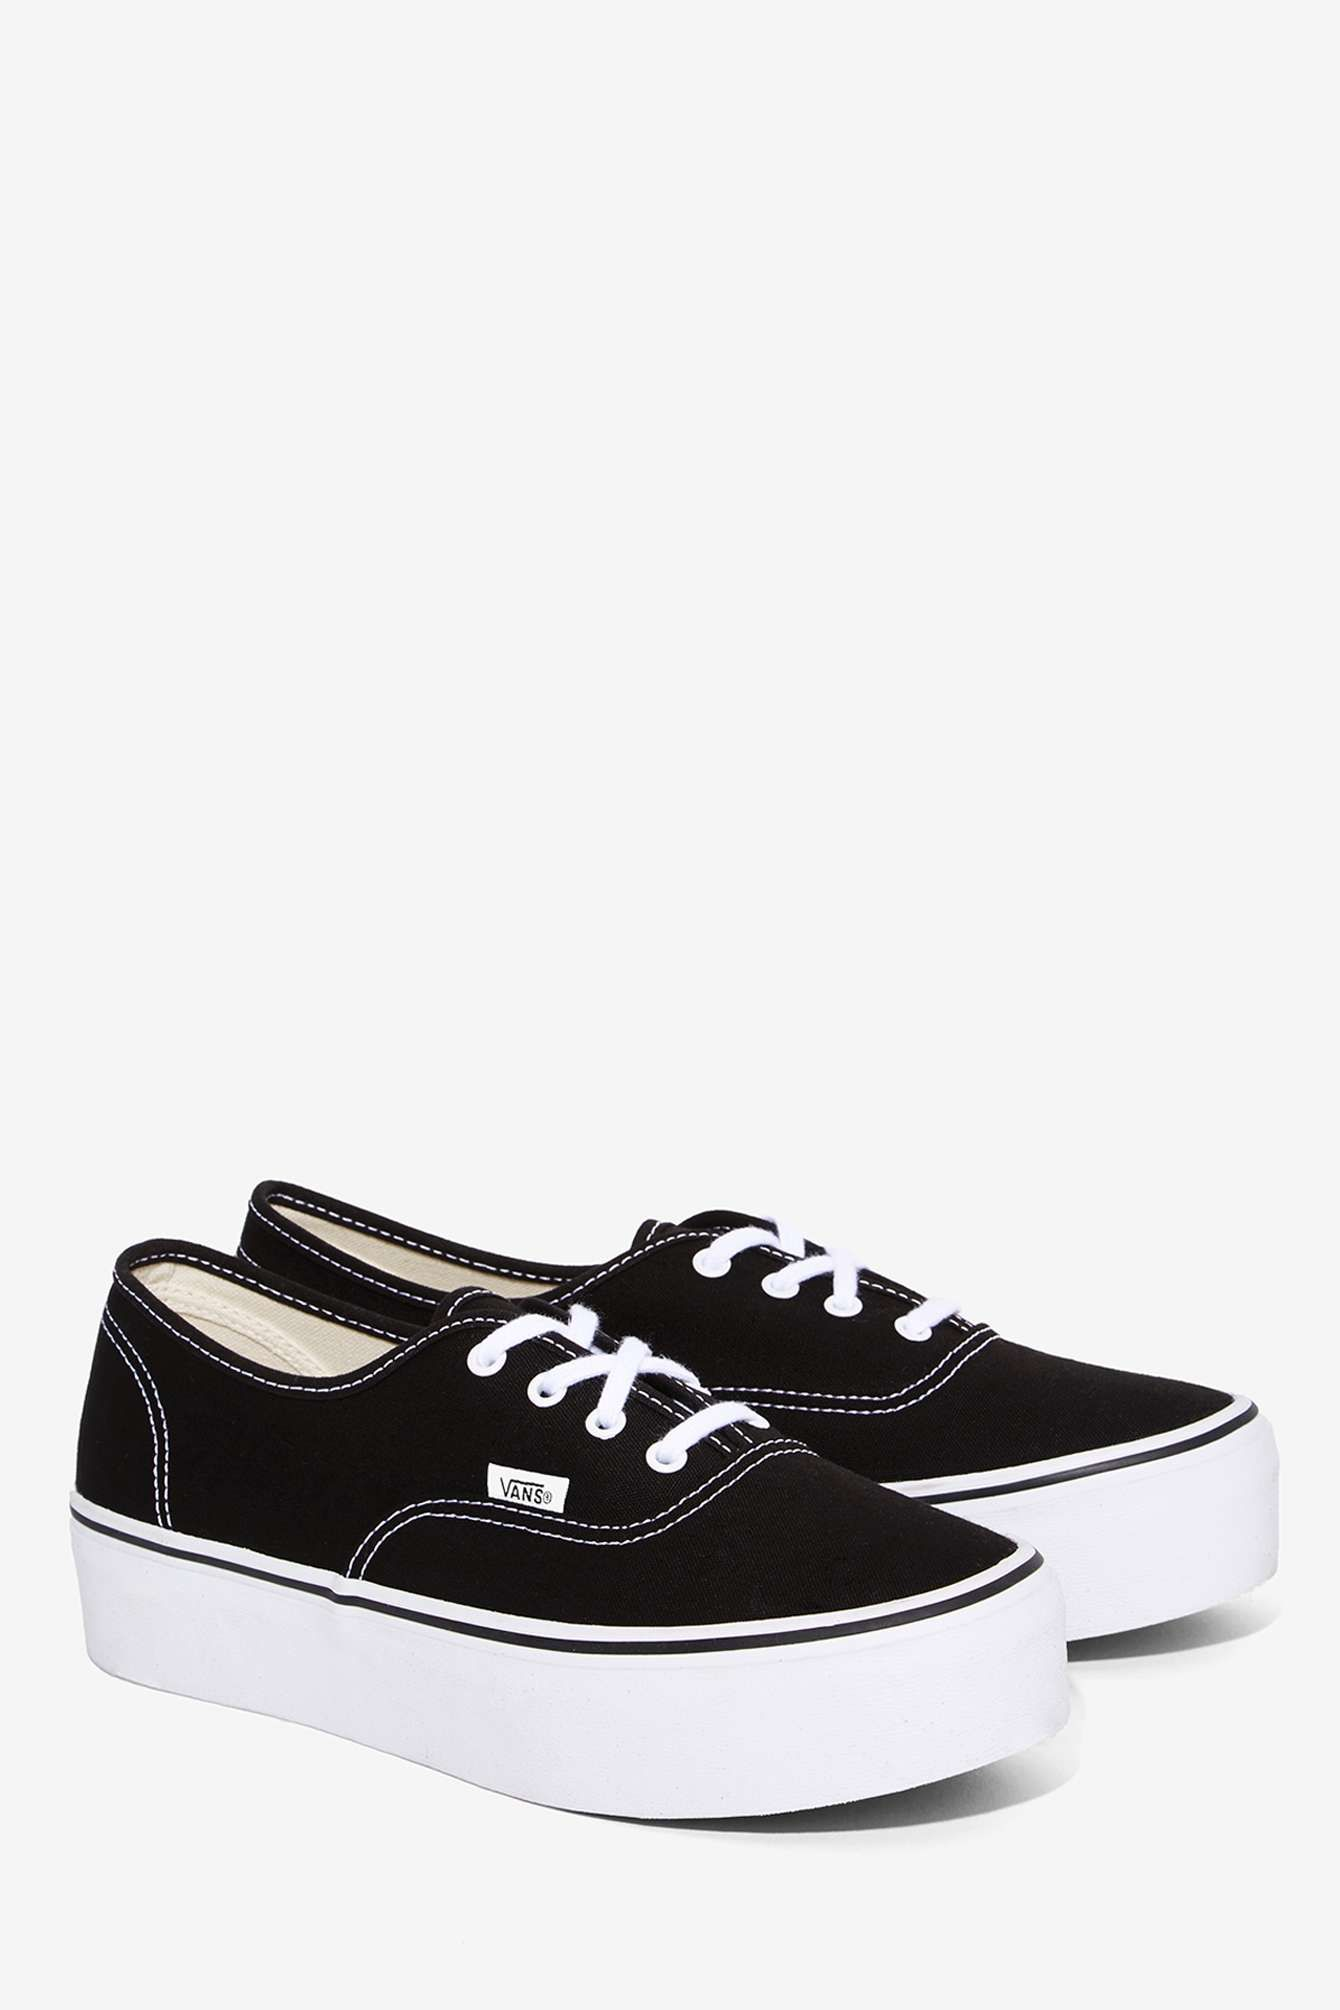 4e5ed50a780af5 Vans Authentic Platform Sneaker - Black